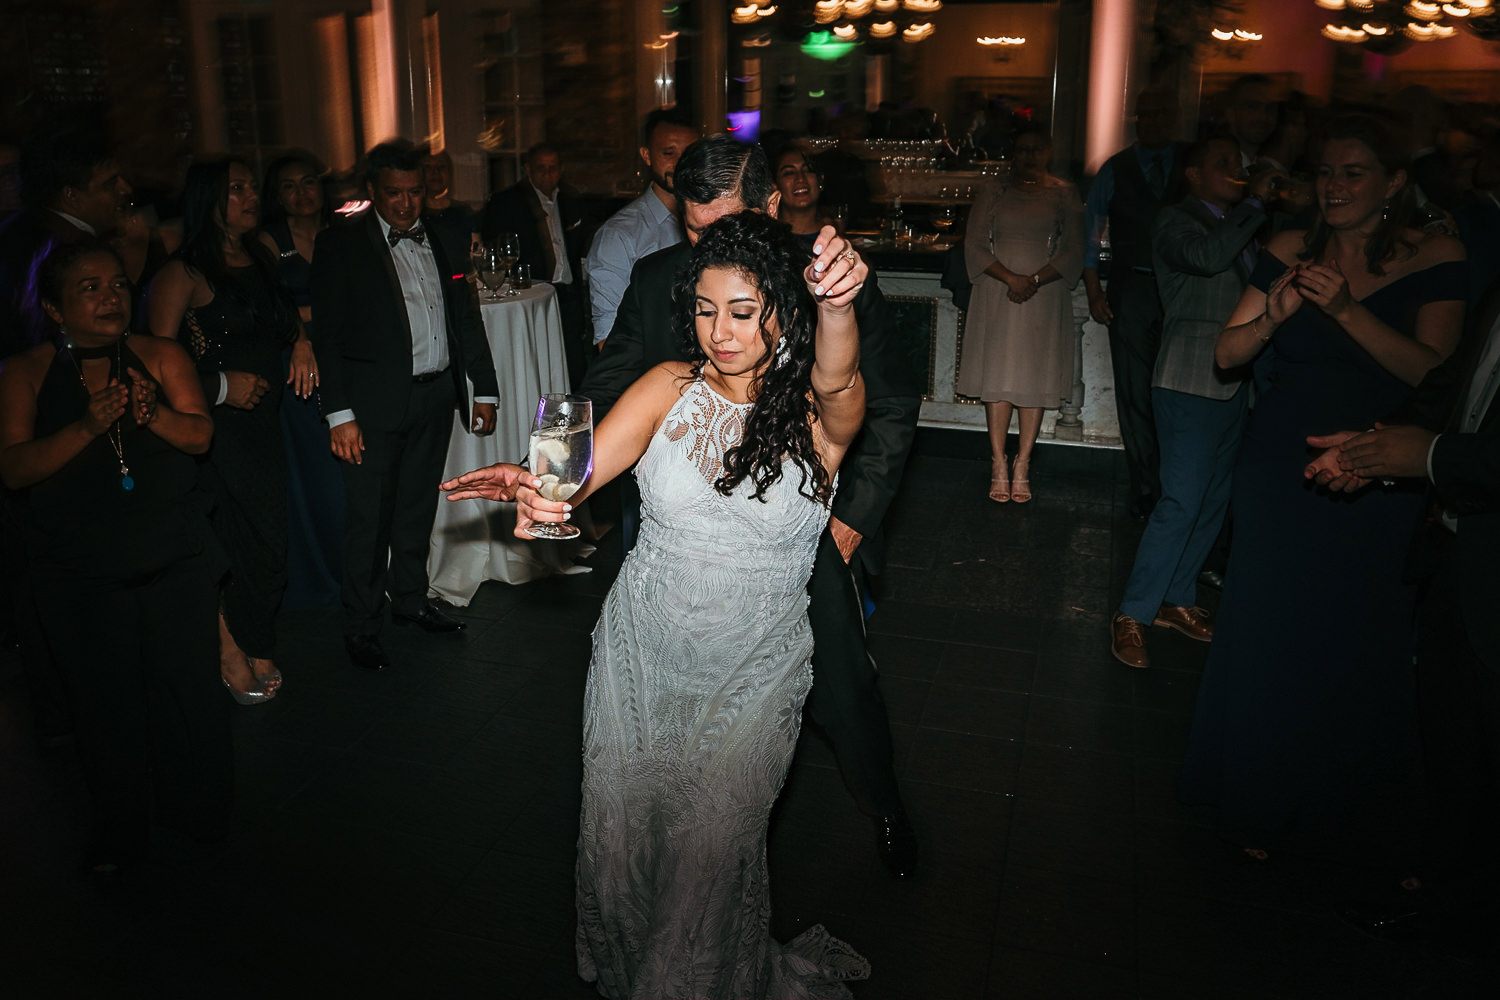 bride dancing snapping fingers holding drink